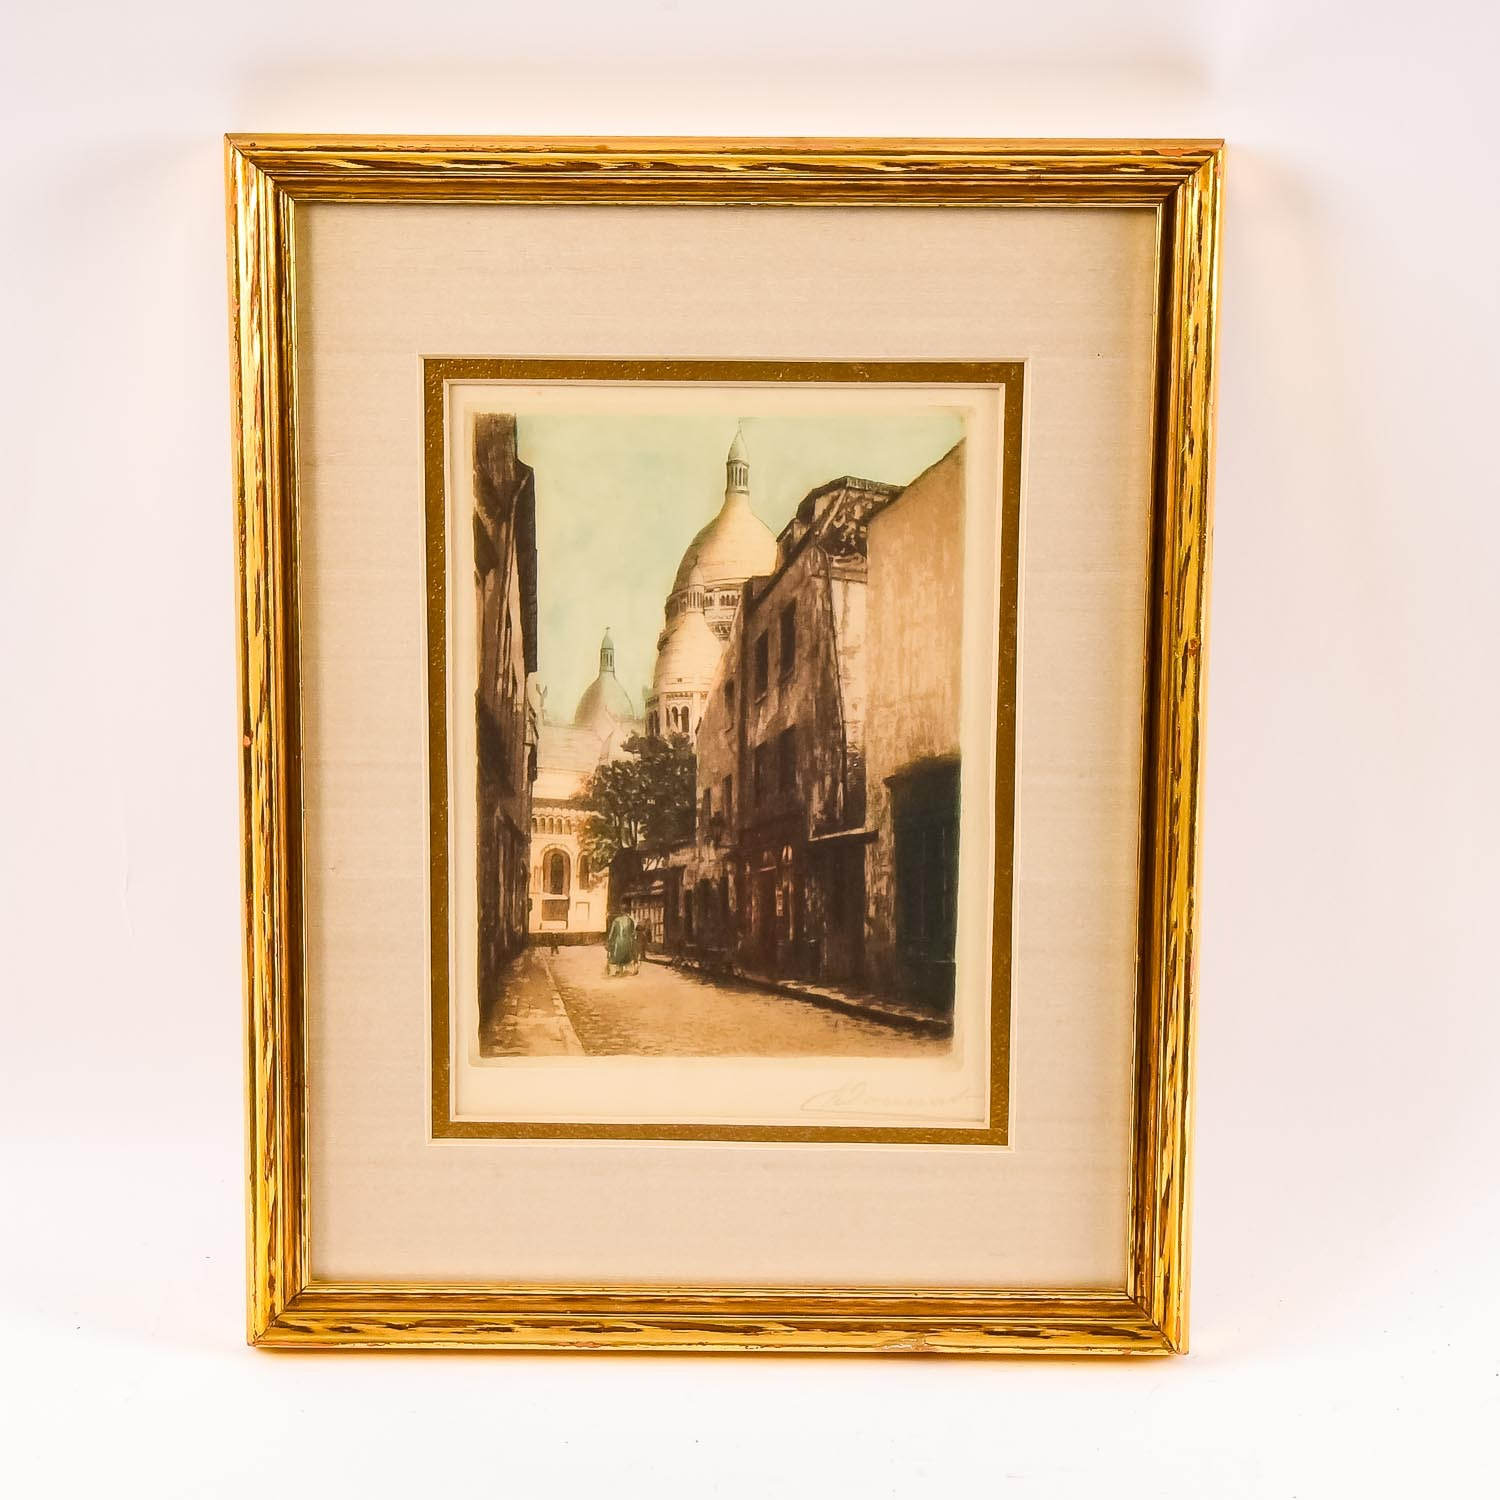 Signed Colored Print of Street Scene